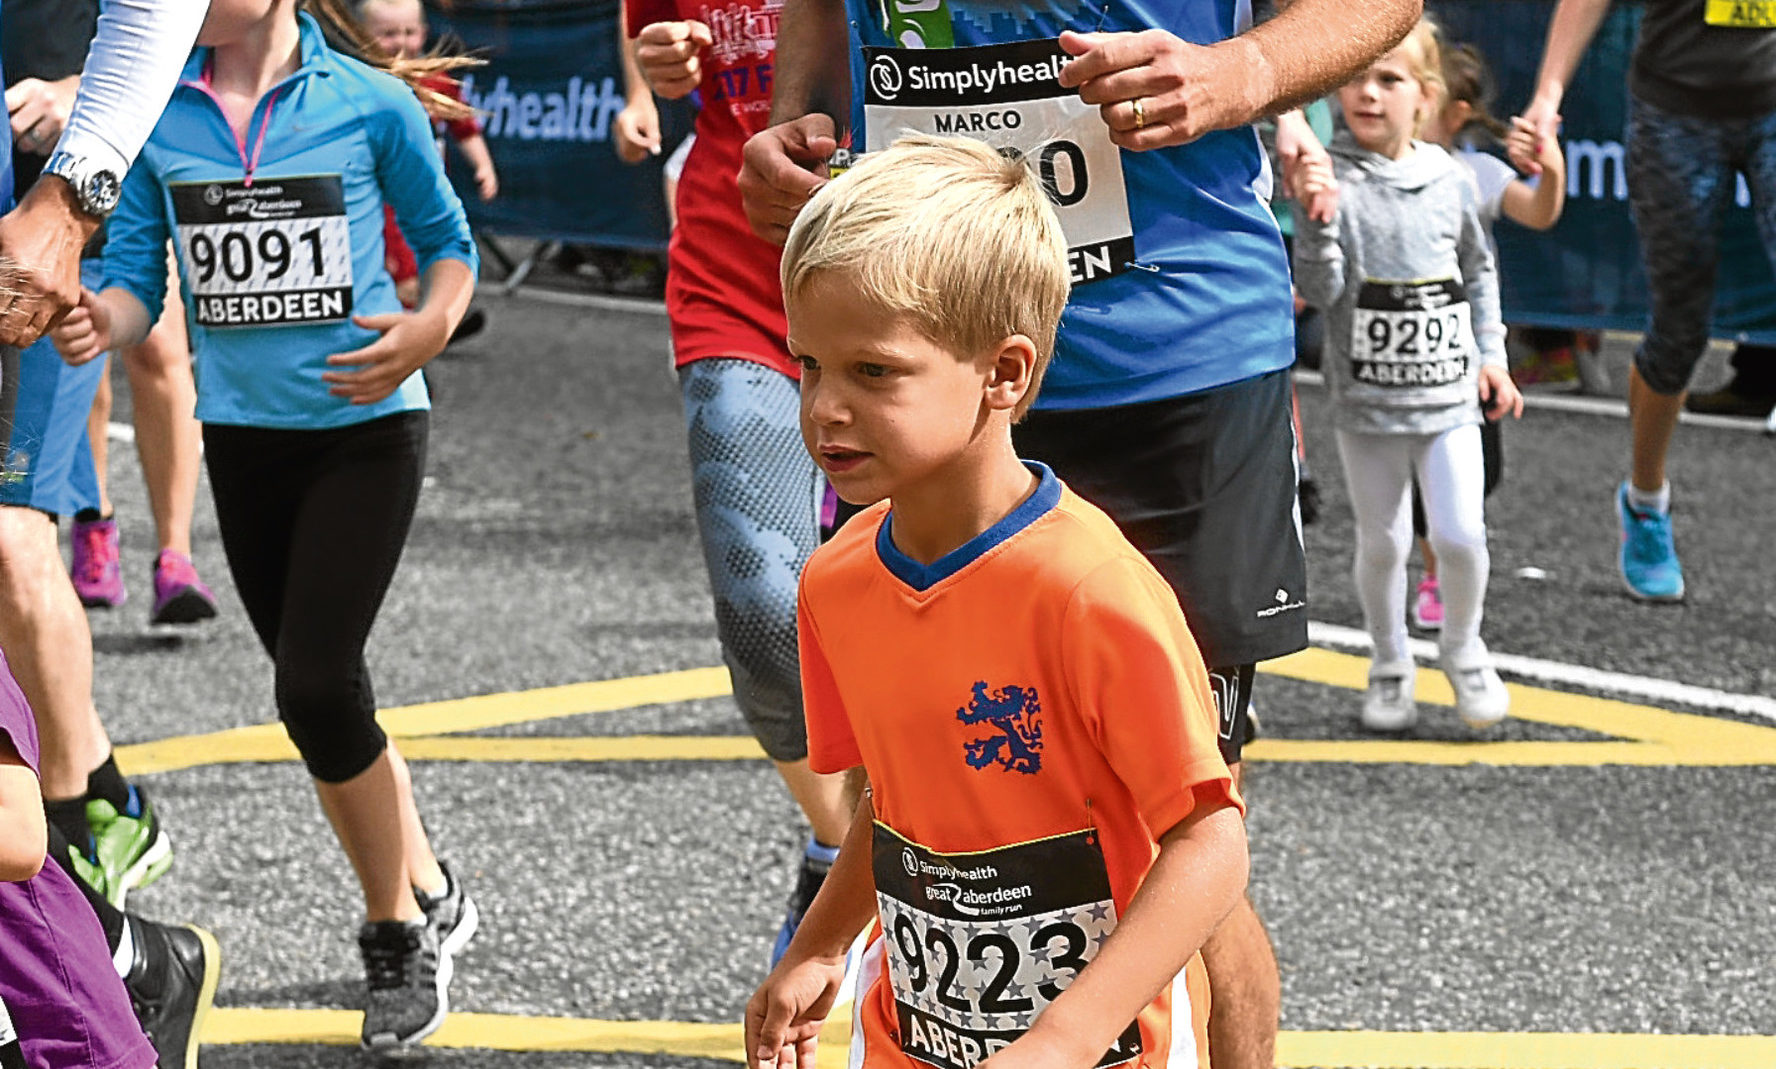 The popular running event includes a family run